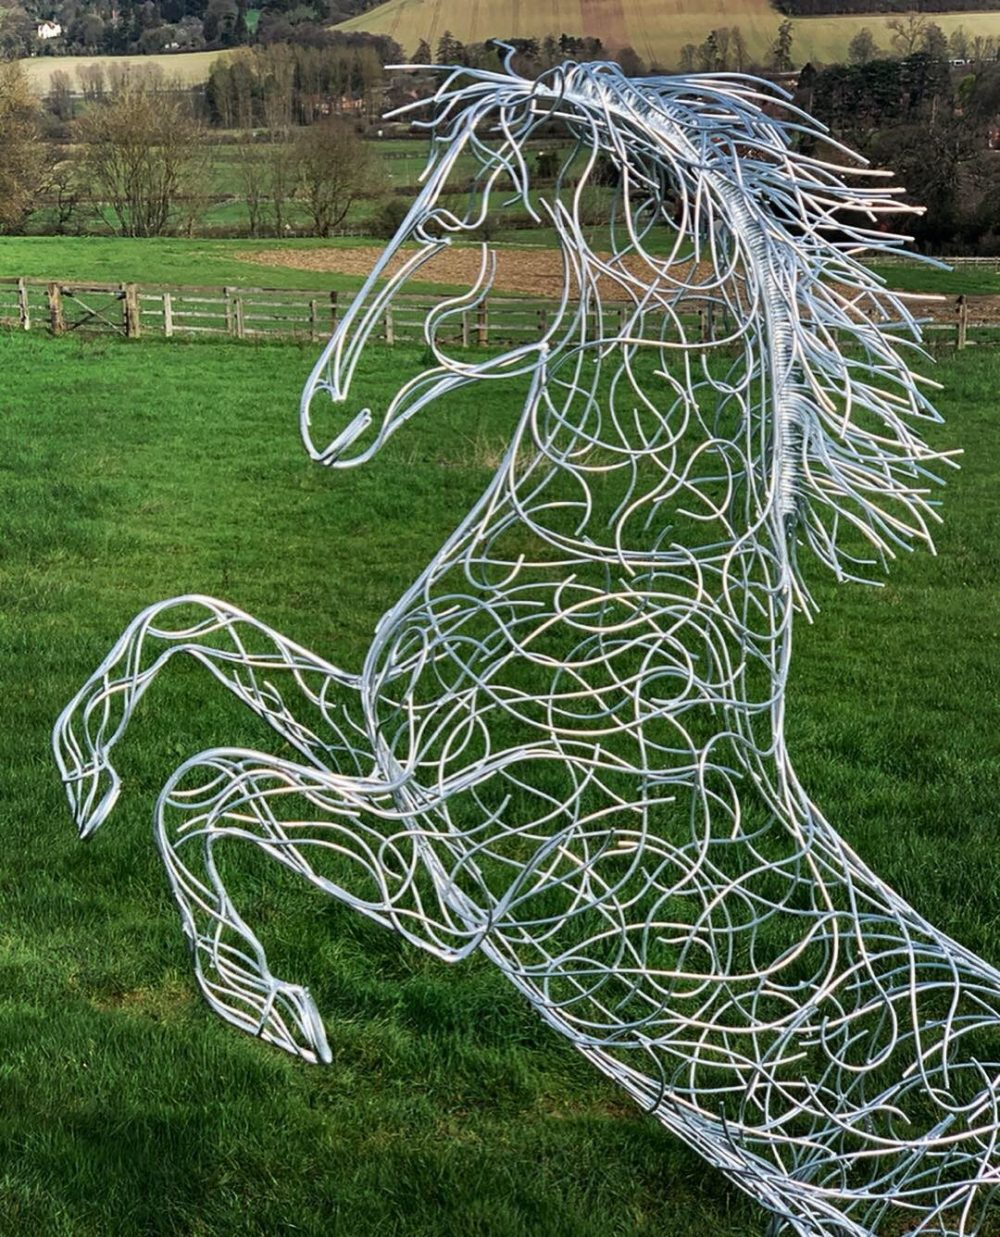 Large Silver Galvanised Rearing Horse Sculpture